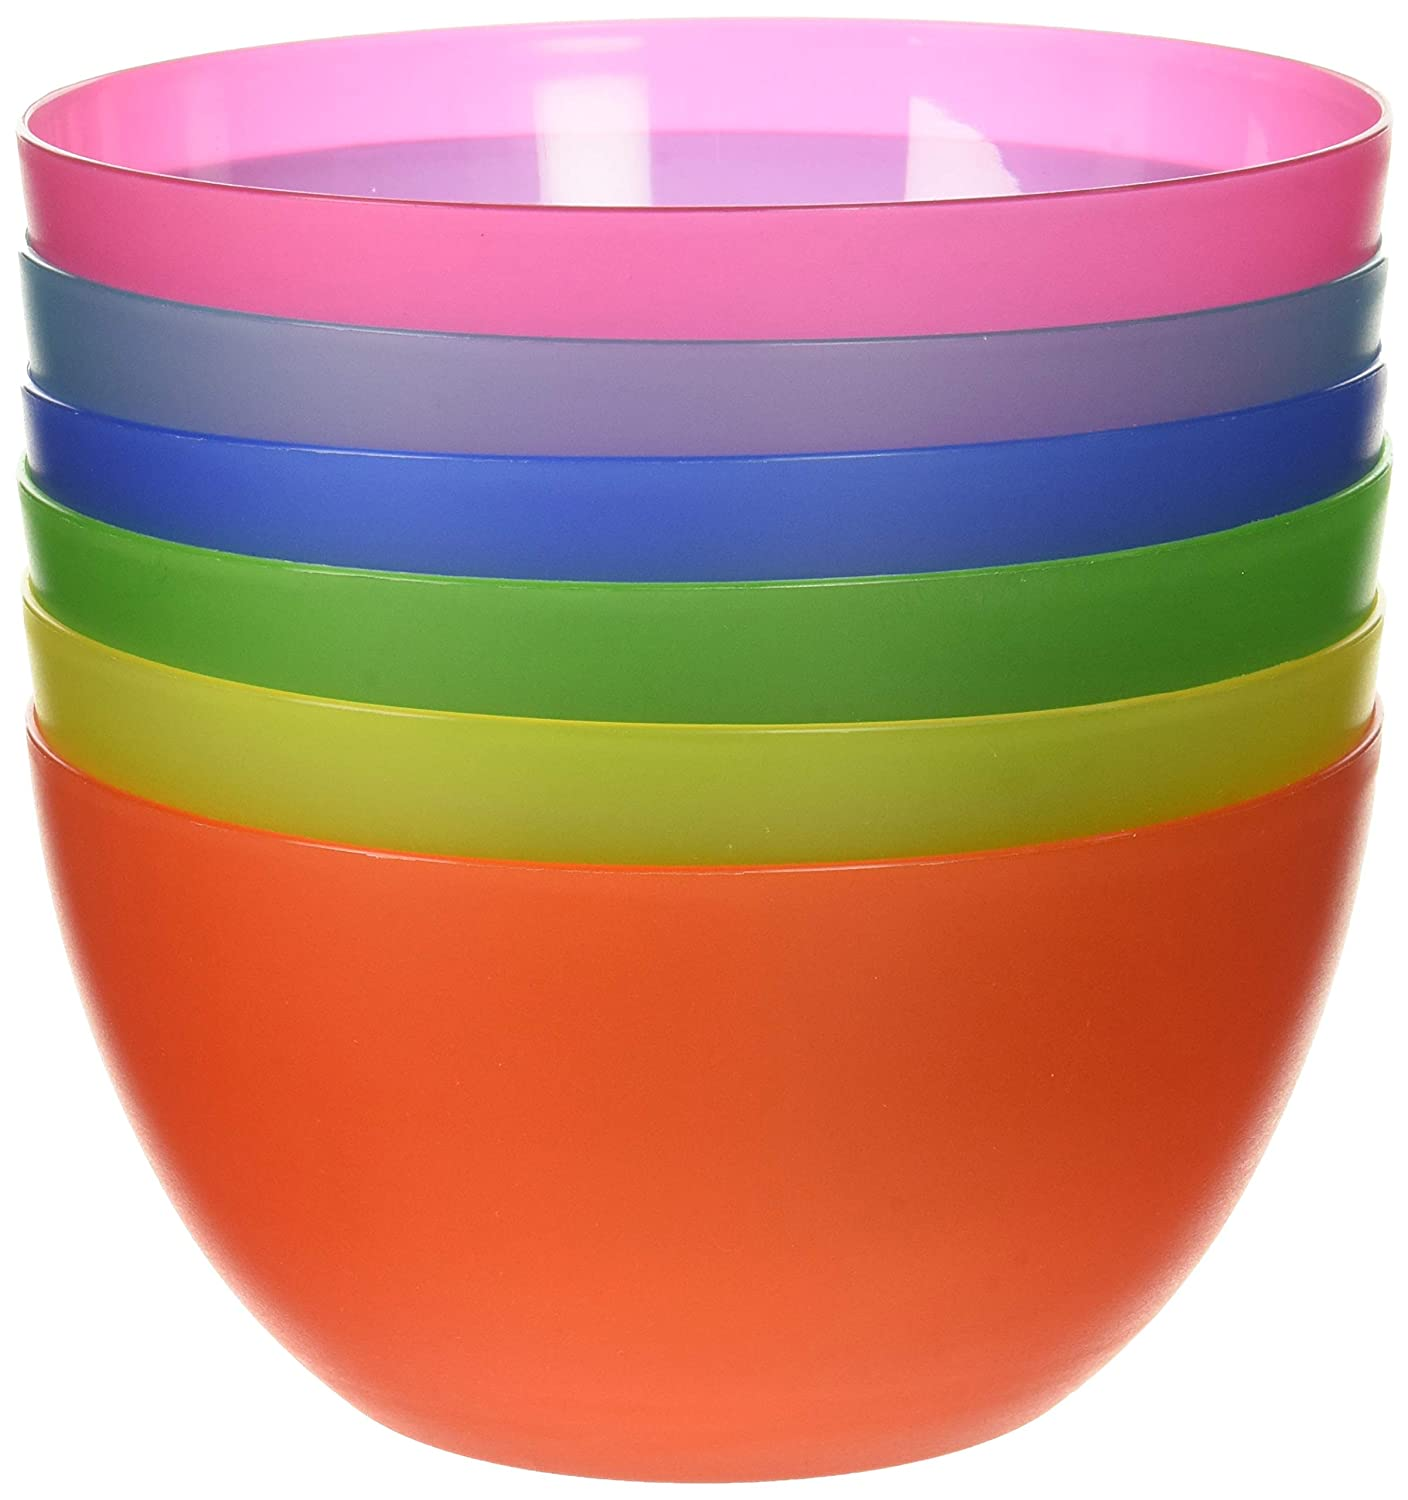 6 Pc Fun Multi-Colored BPA-Free Bowls - Cereal Fruit or Soup Bowl Imperial Home MW1912